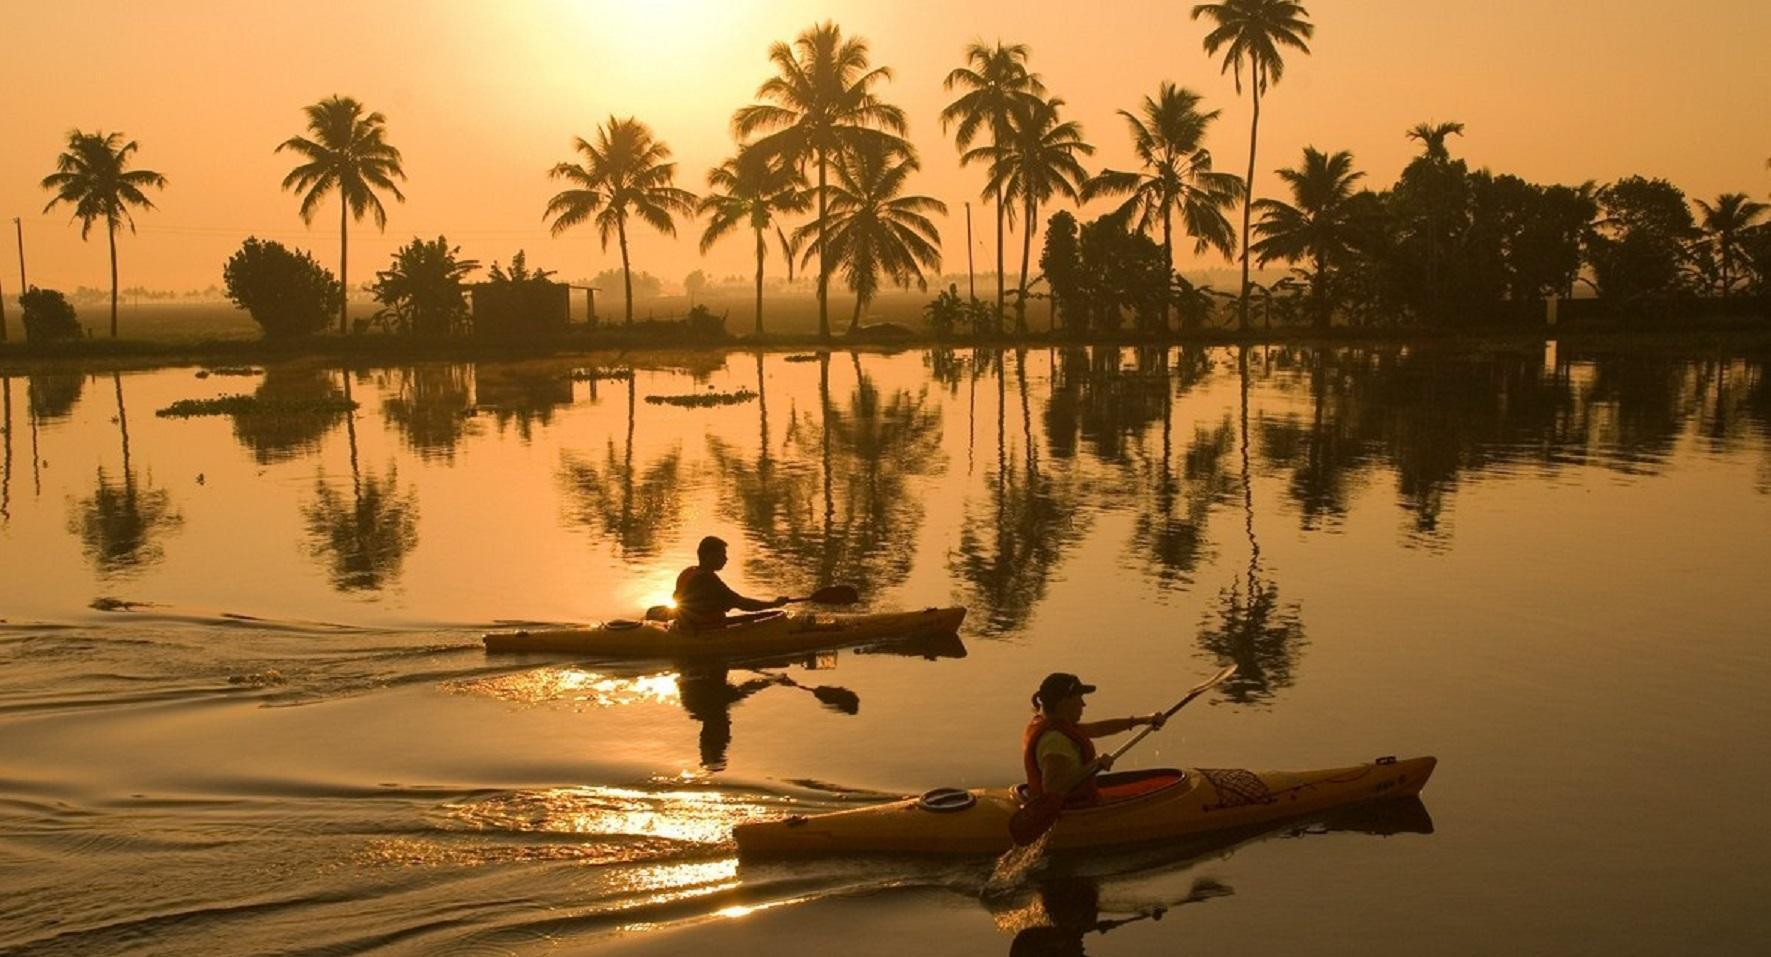 Canoe Ride in Kerala